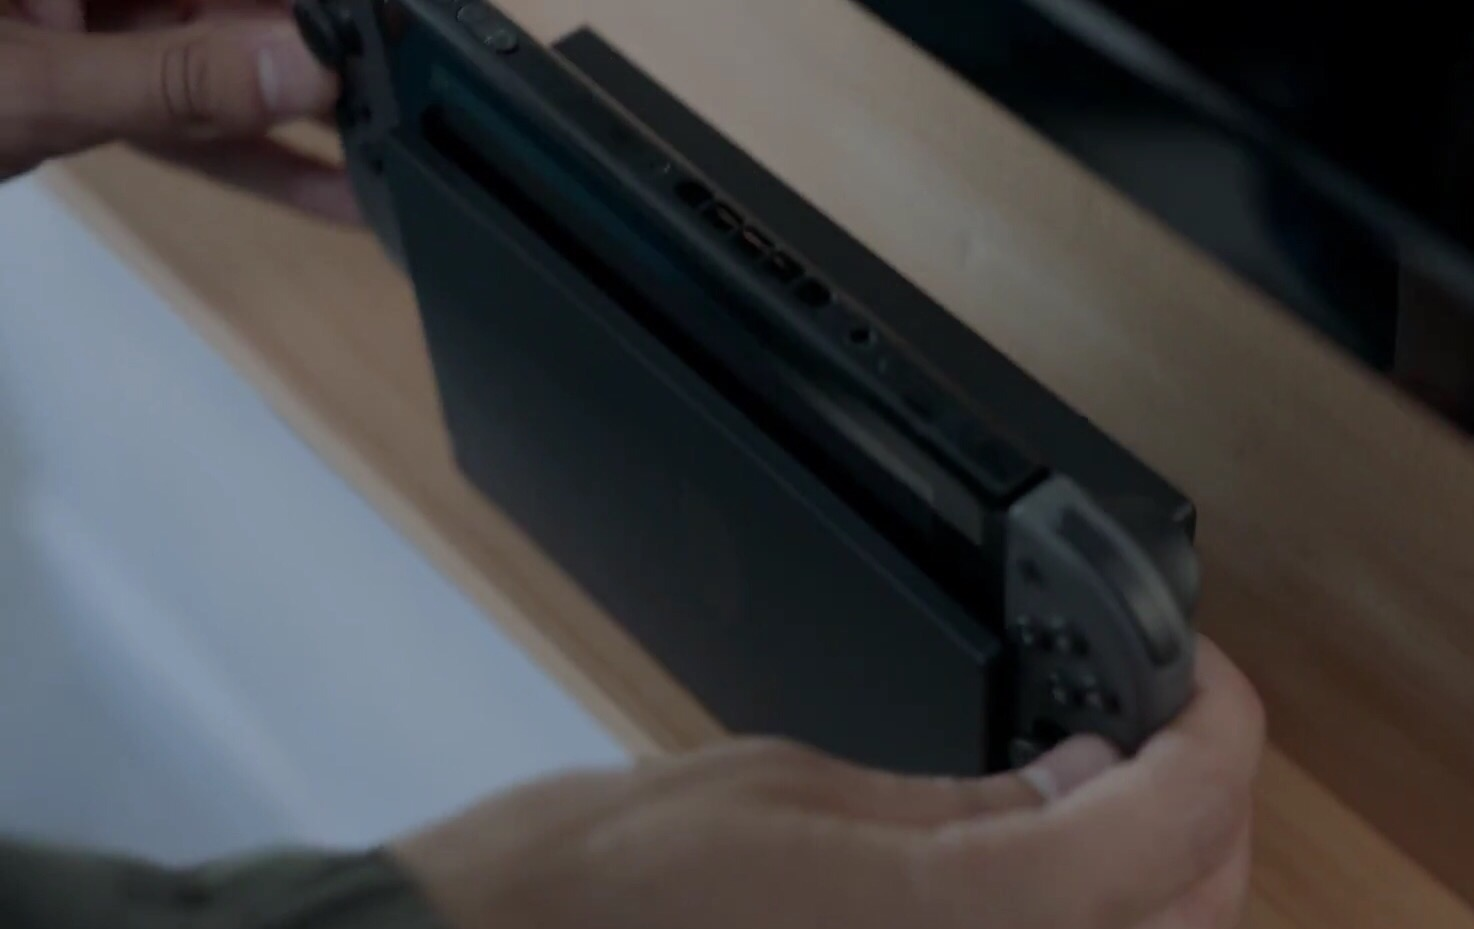 The Switch's fan vent is positioned on the top of the tablet.